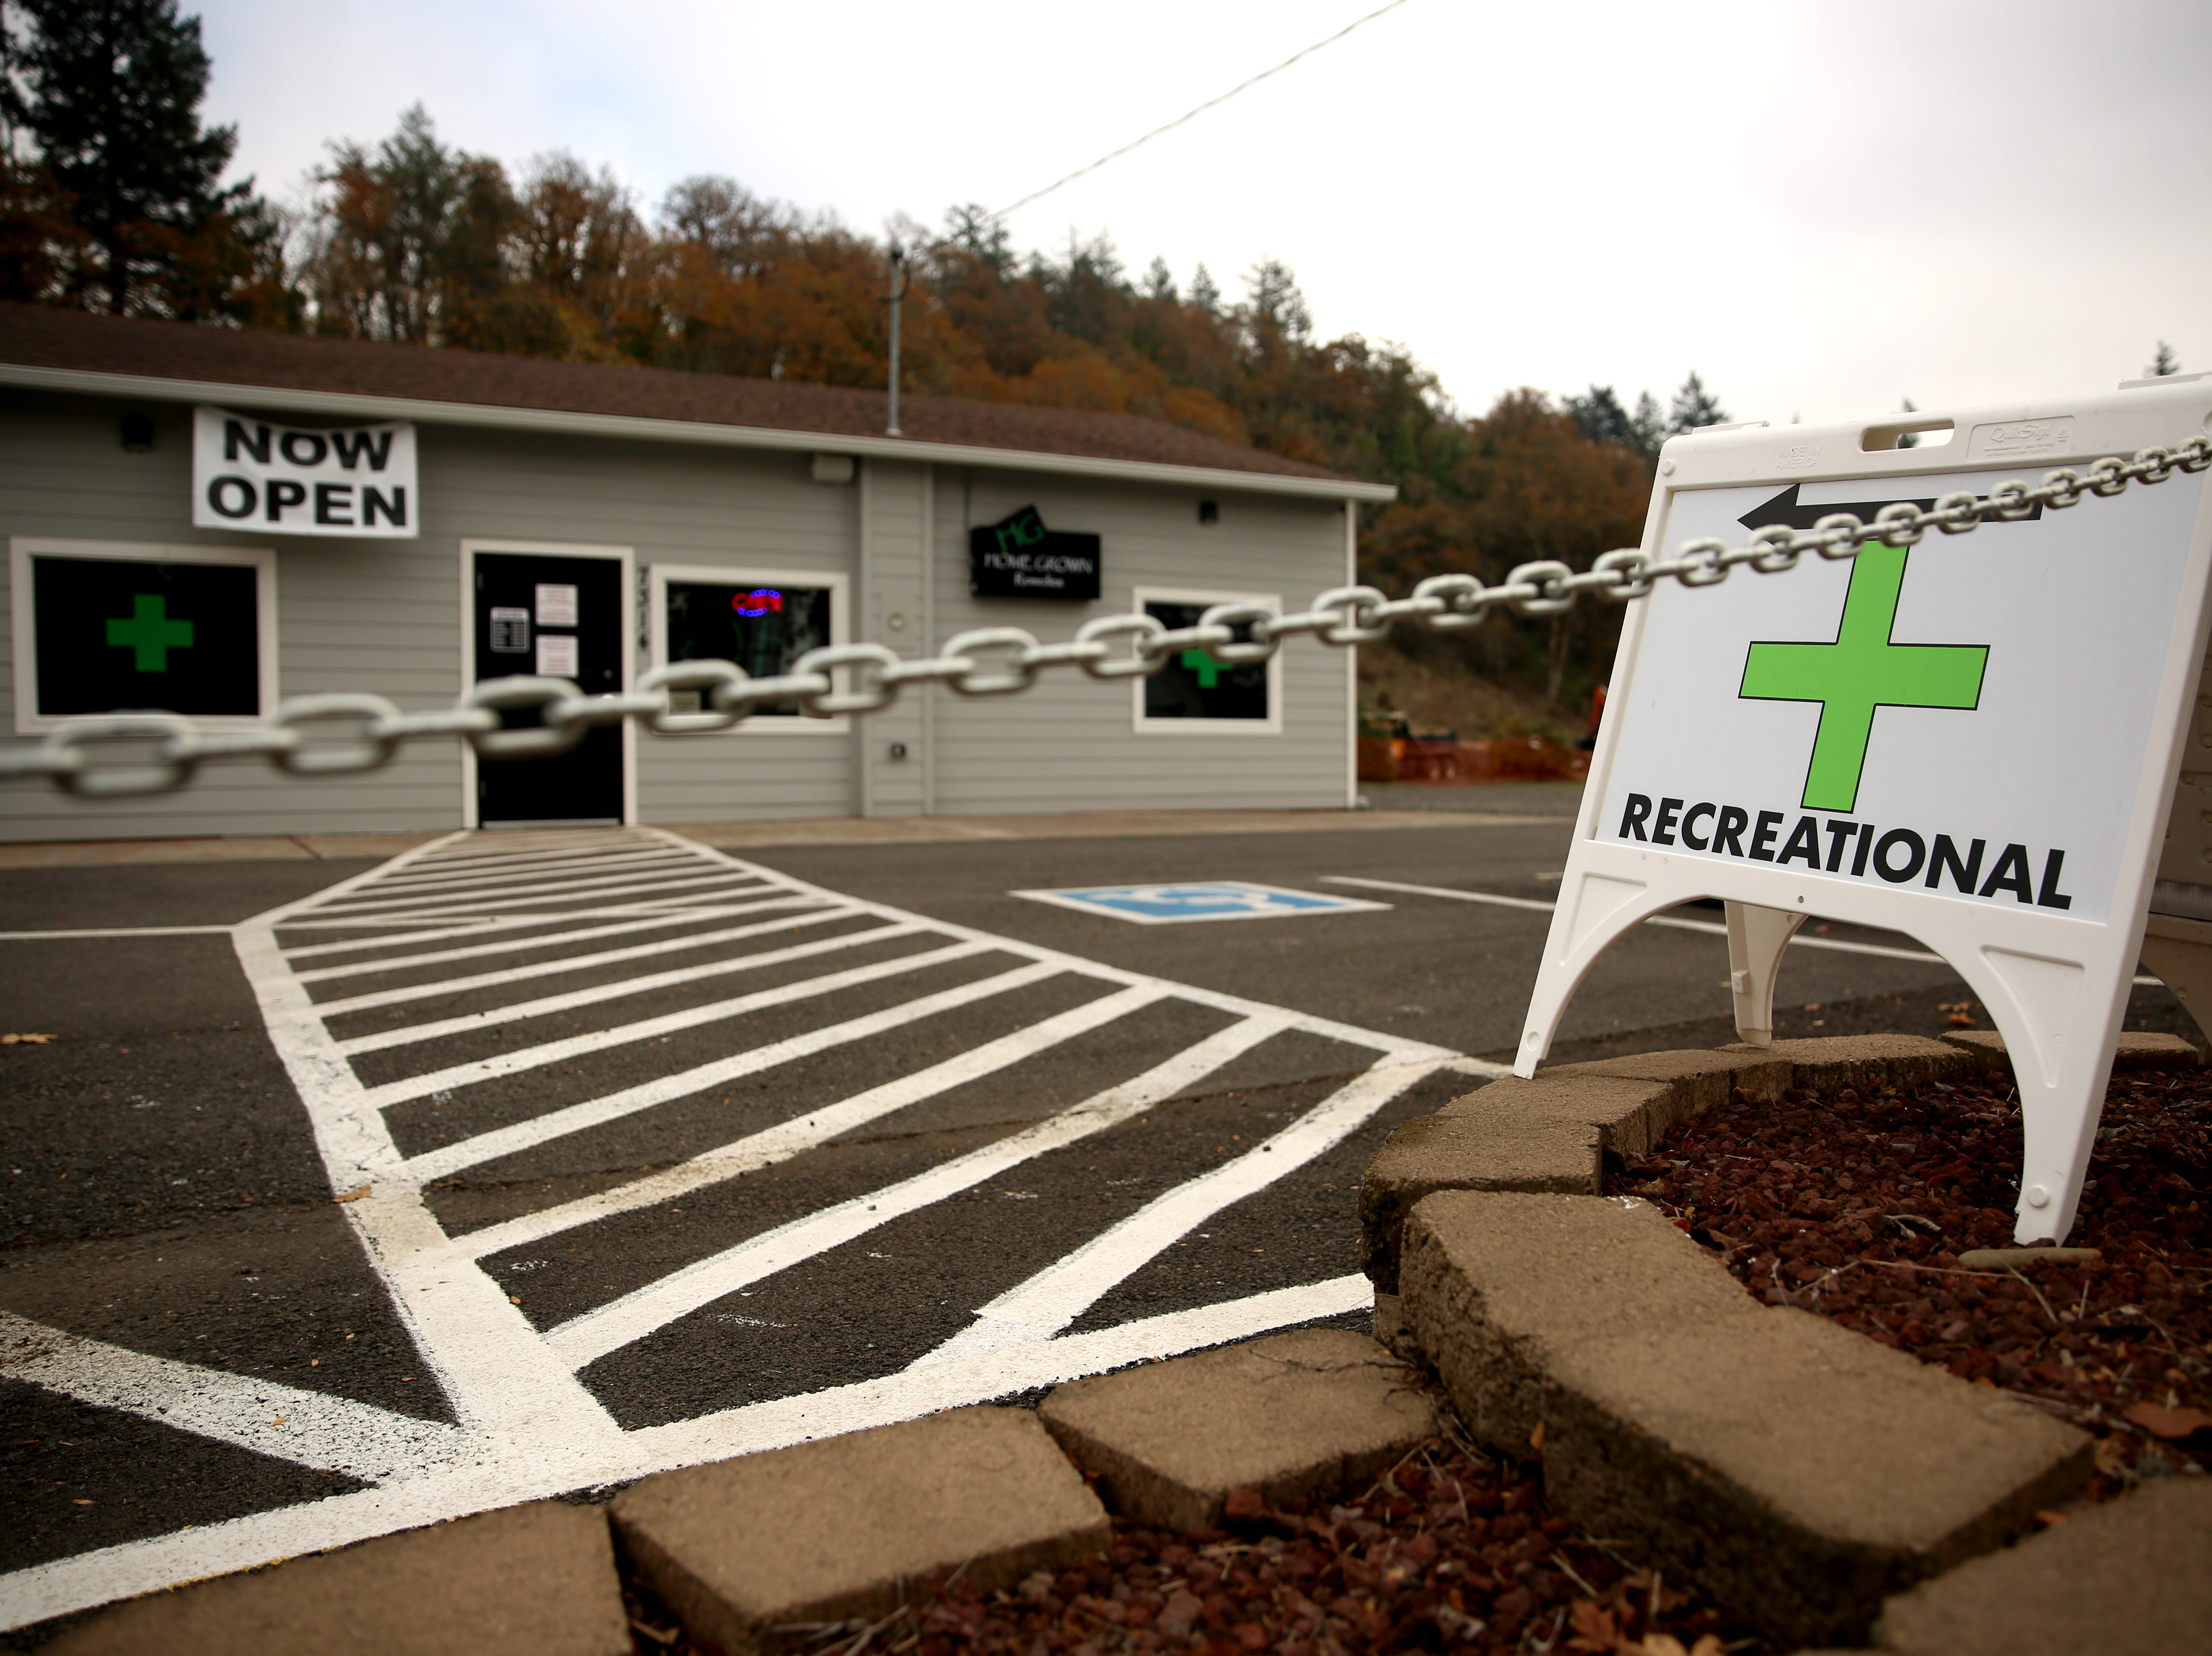 Turner voters give marijuana dispensary unintentional monopoly